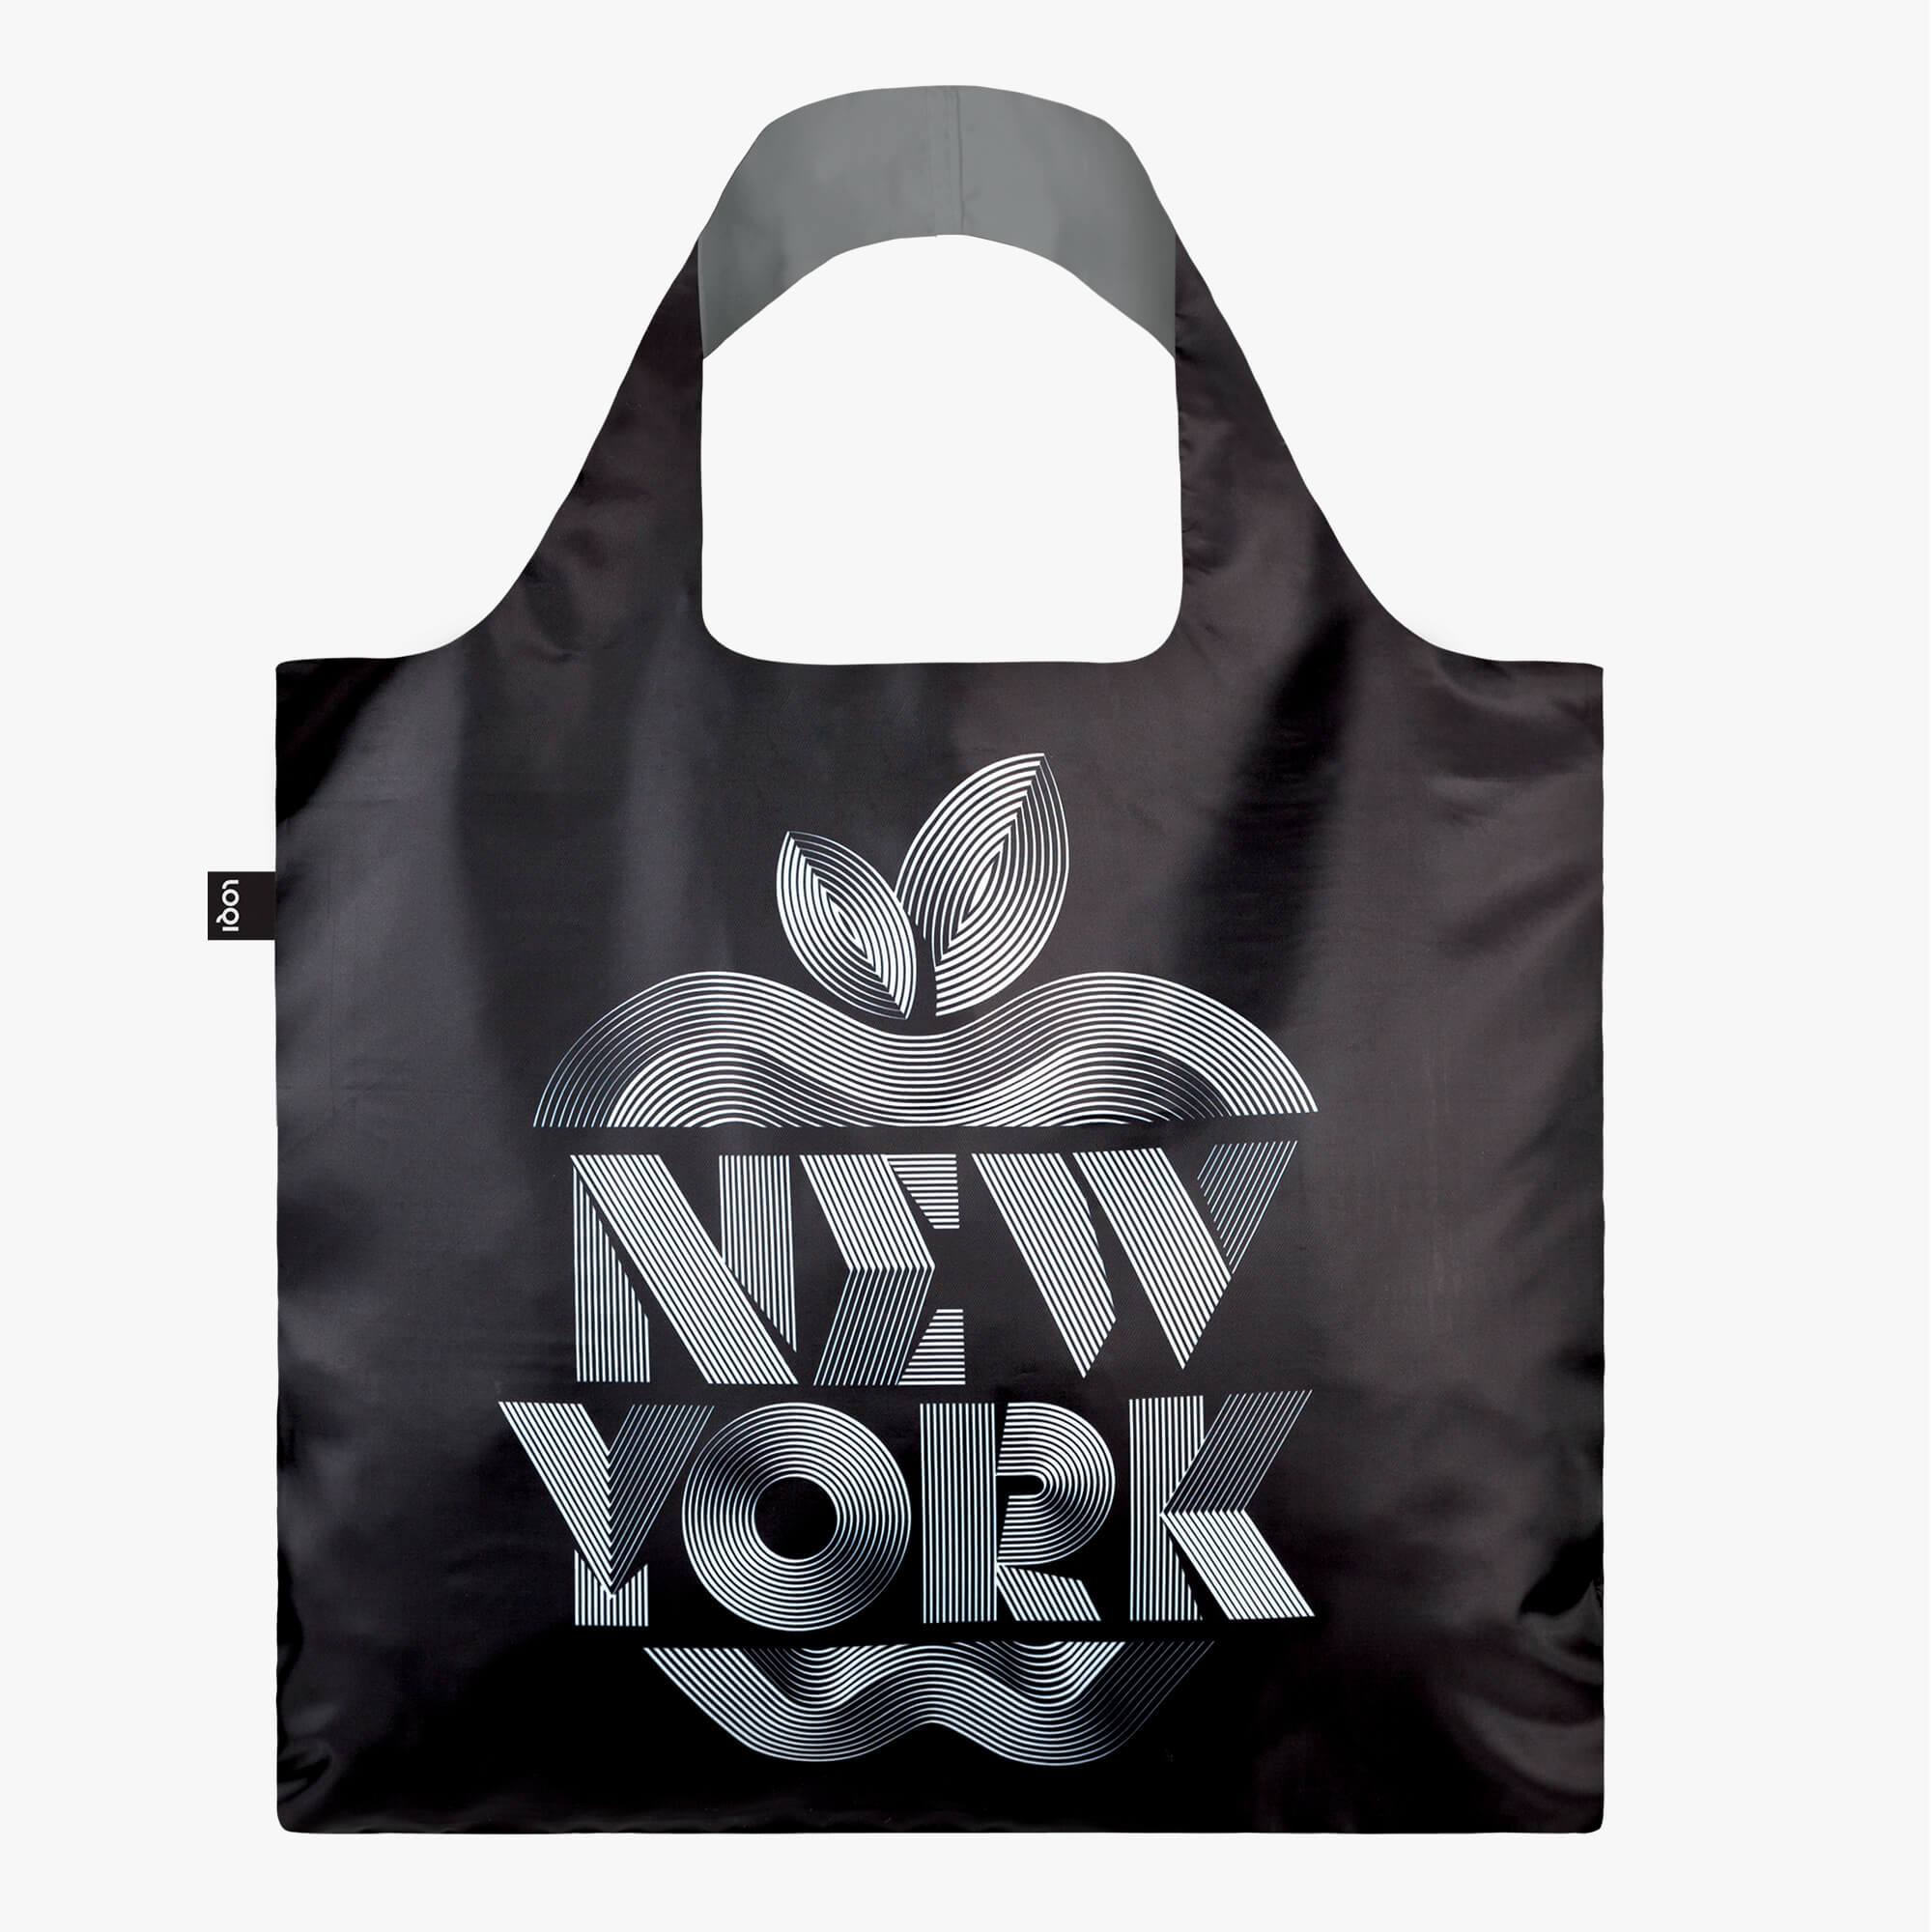 LOQI Alex Trochut New York Bag